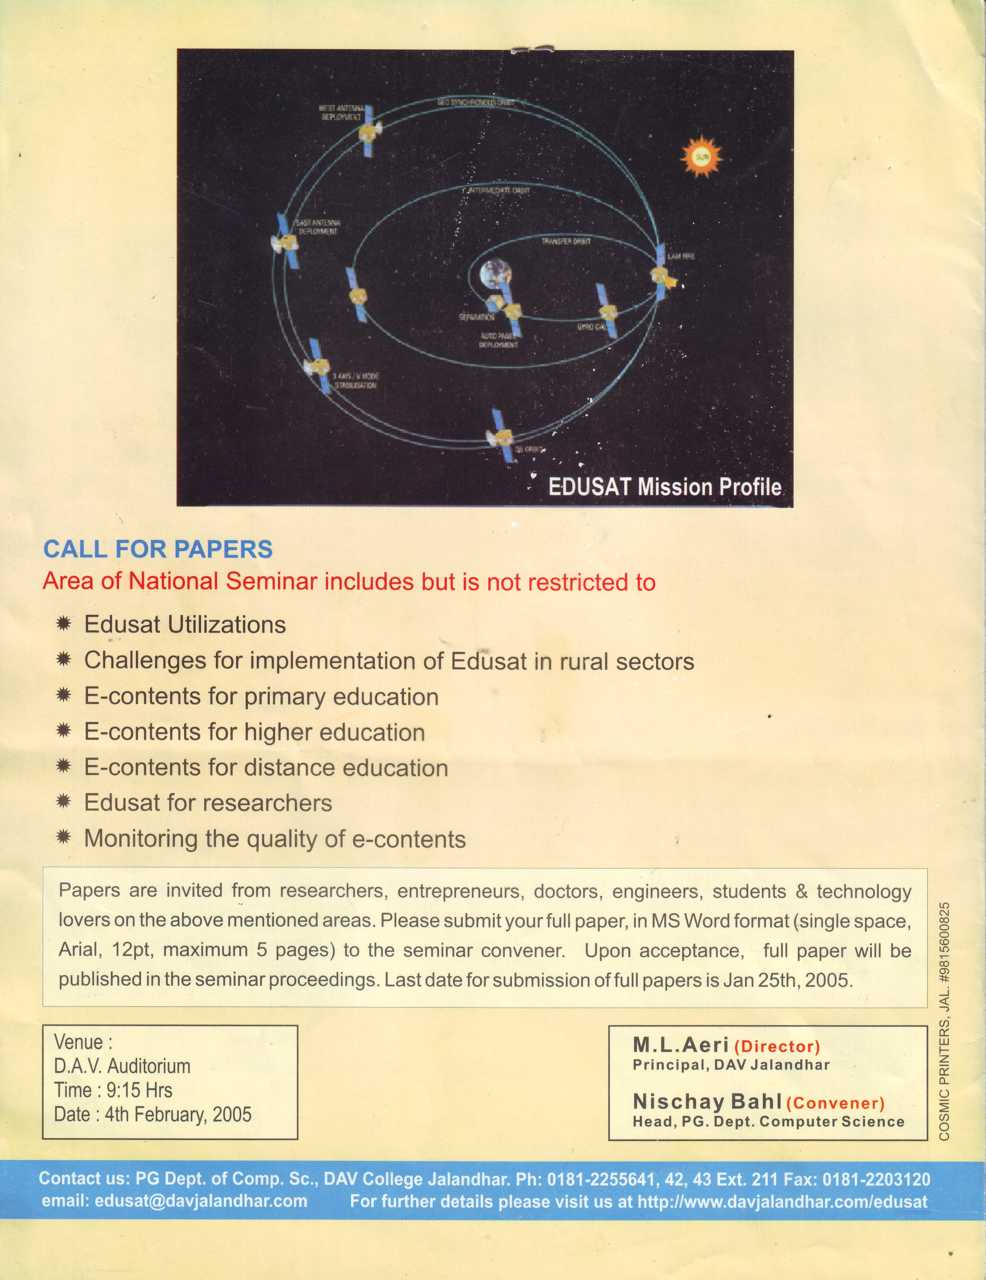 Call for Papers (DAV College)